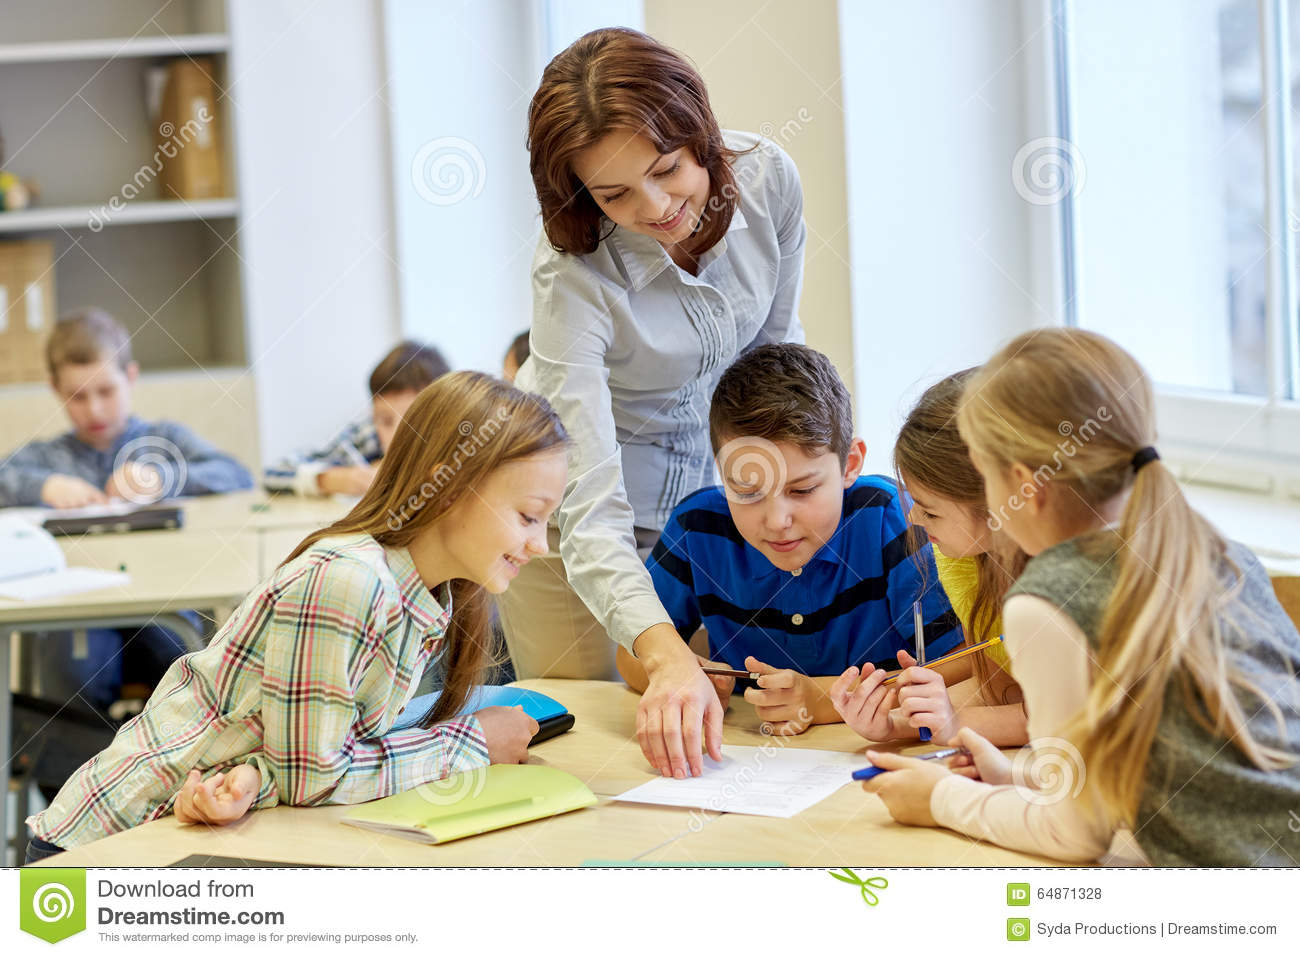 group of school kids writing test in classroom stock photo - image